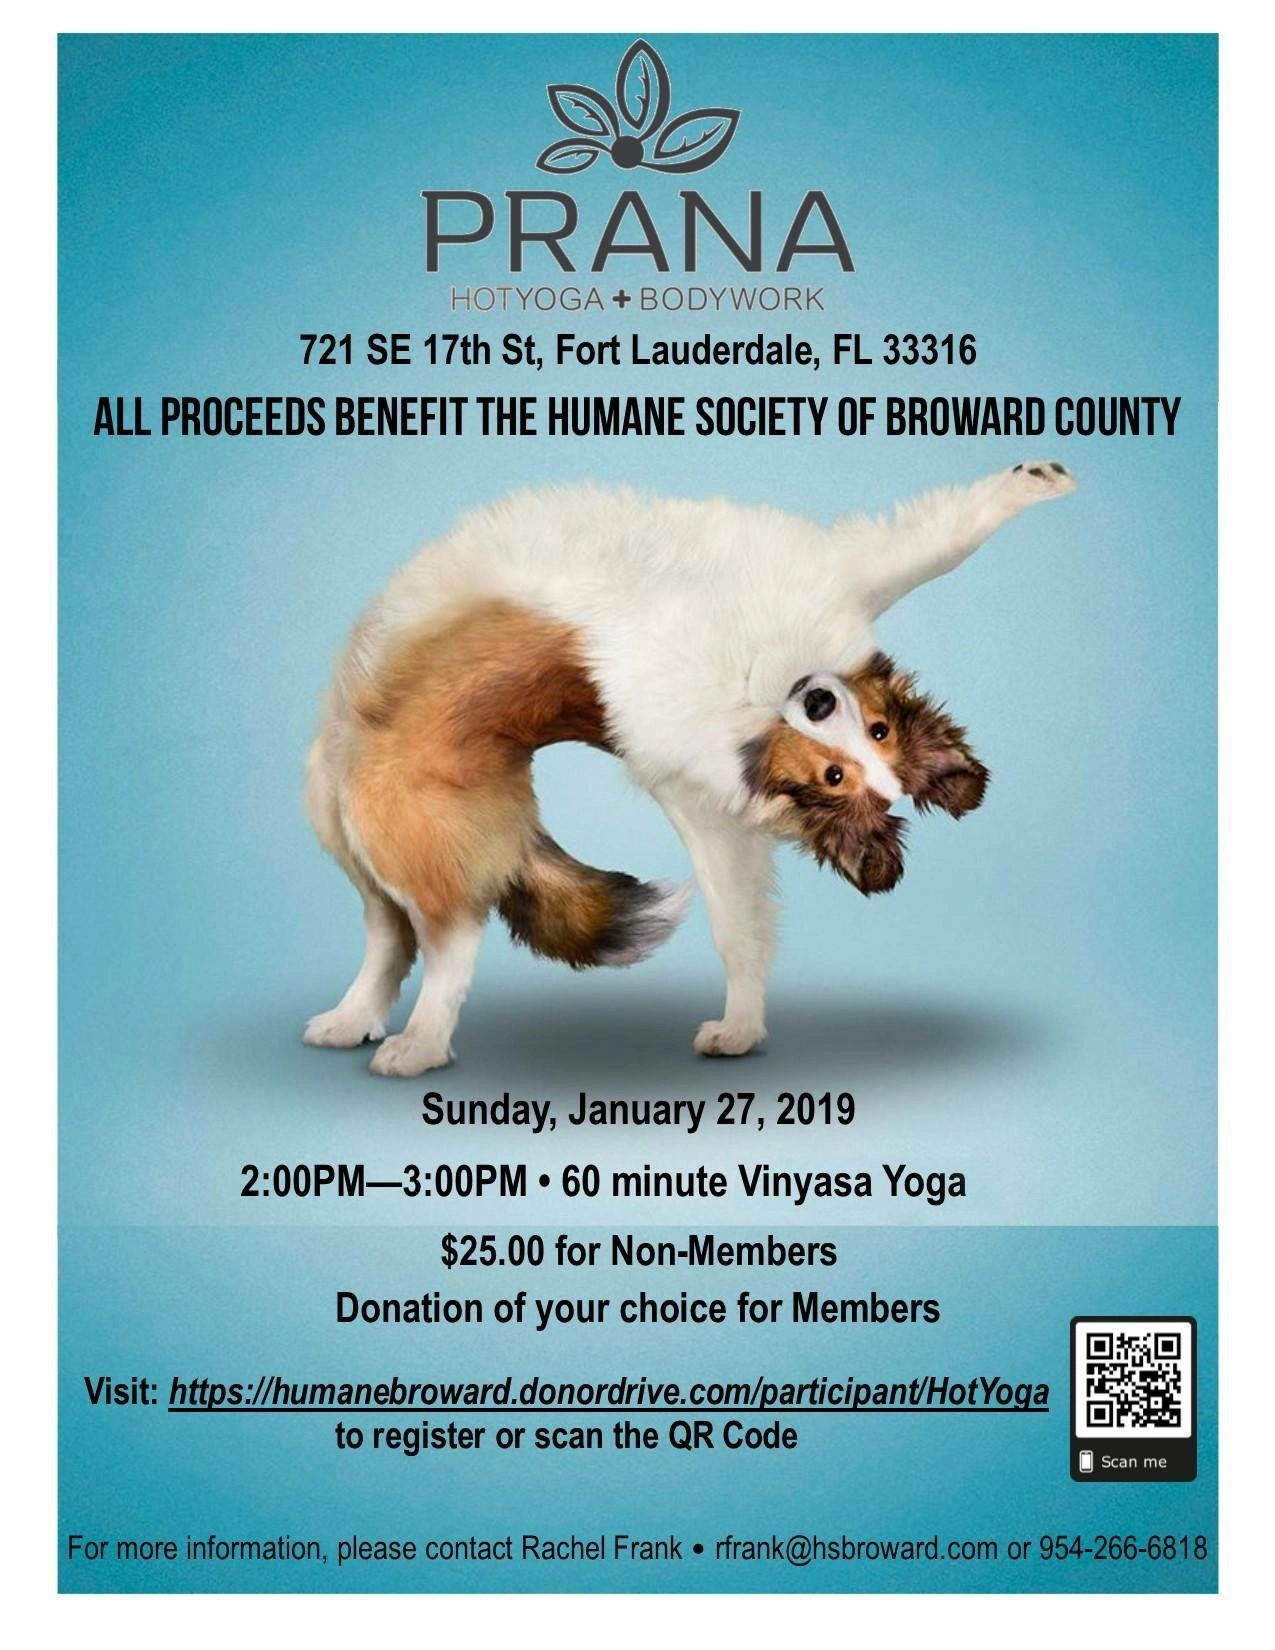 Special Class this Sunday to Benefit our Furry Friends